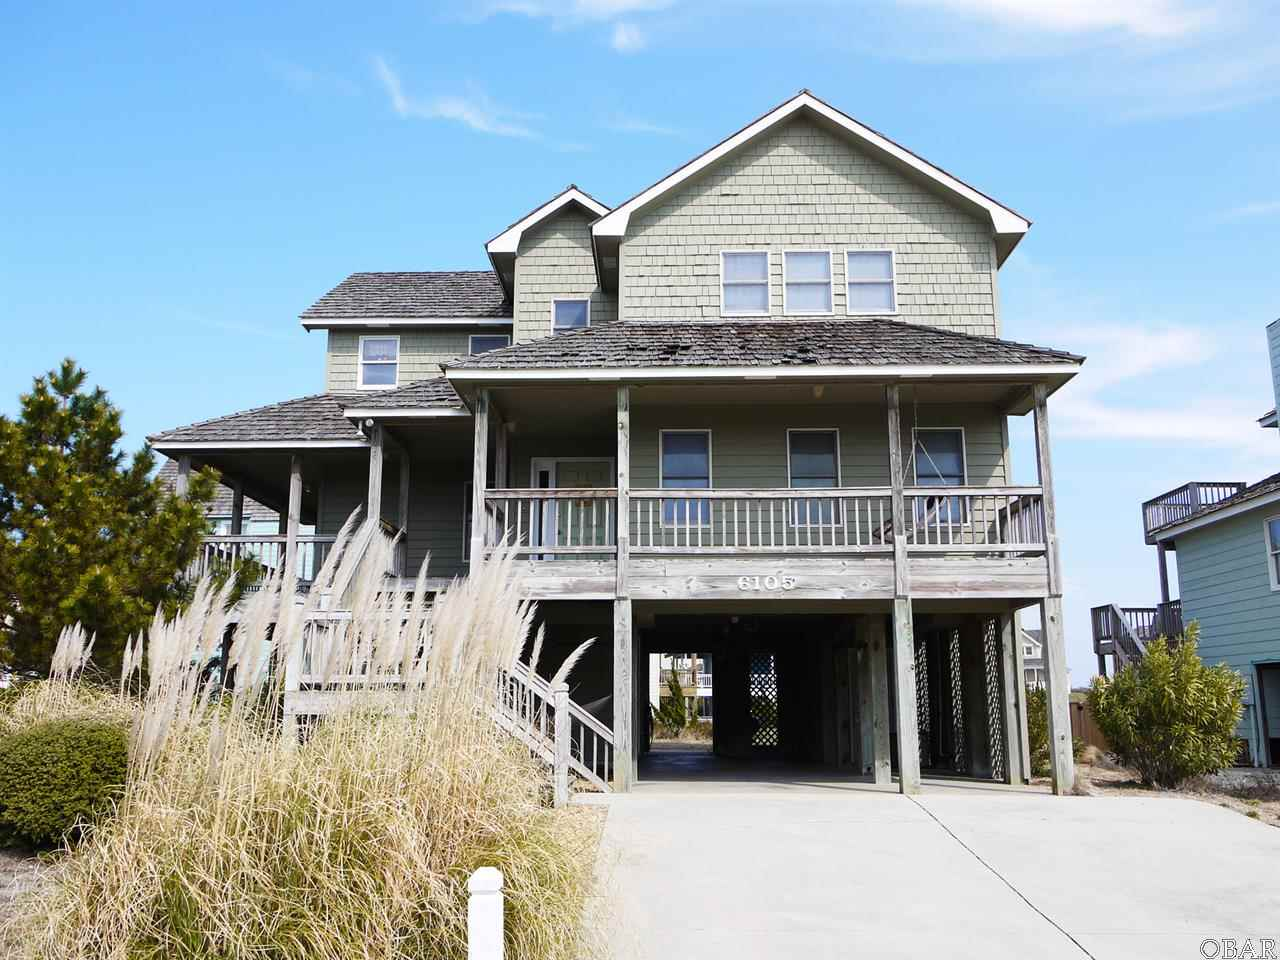 6105 Baymeadow Drive,Nags Head,NC 27959,5 Bedrooms Bedrooms,4 BathroomsBathrooms,Residential,Baymeadow Drive,84659